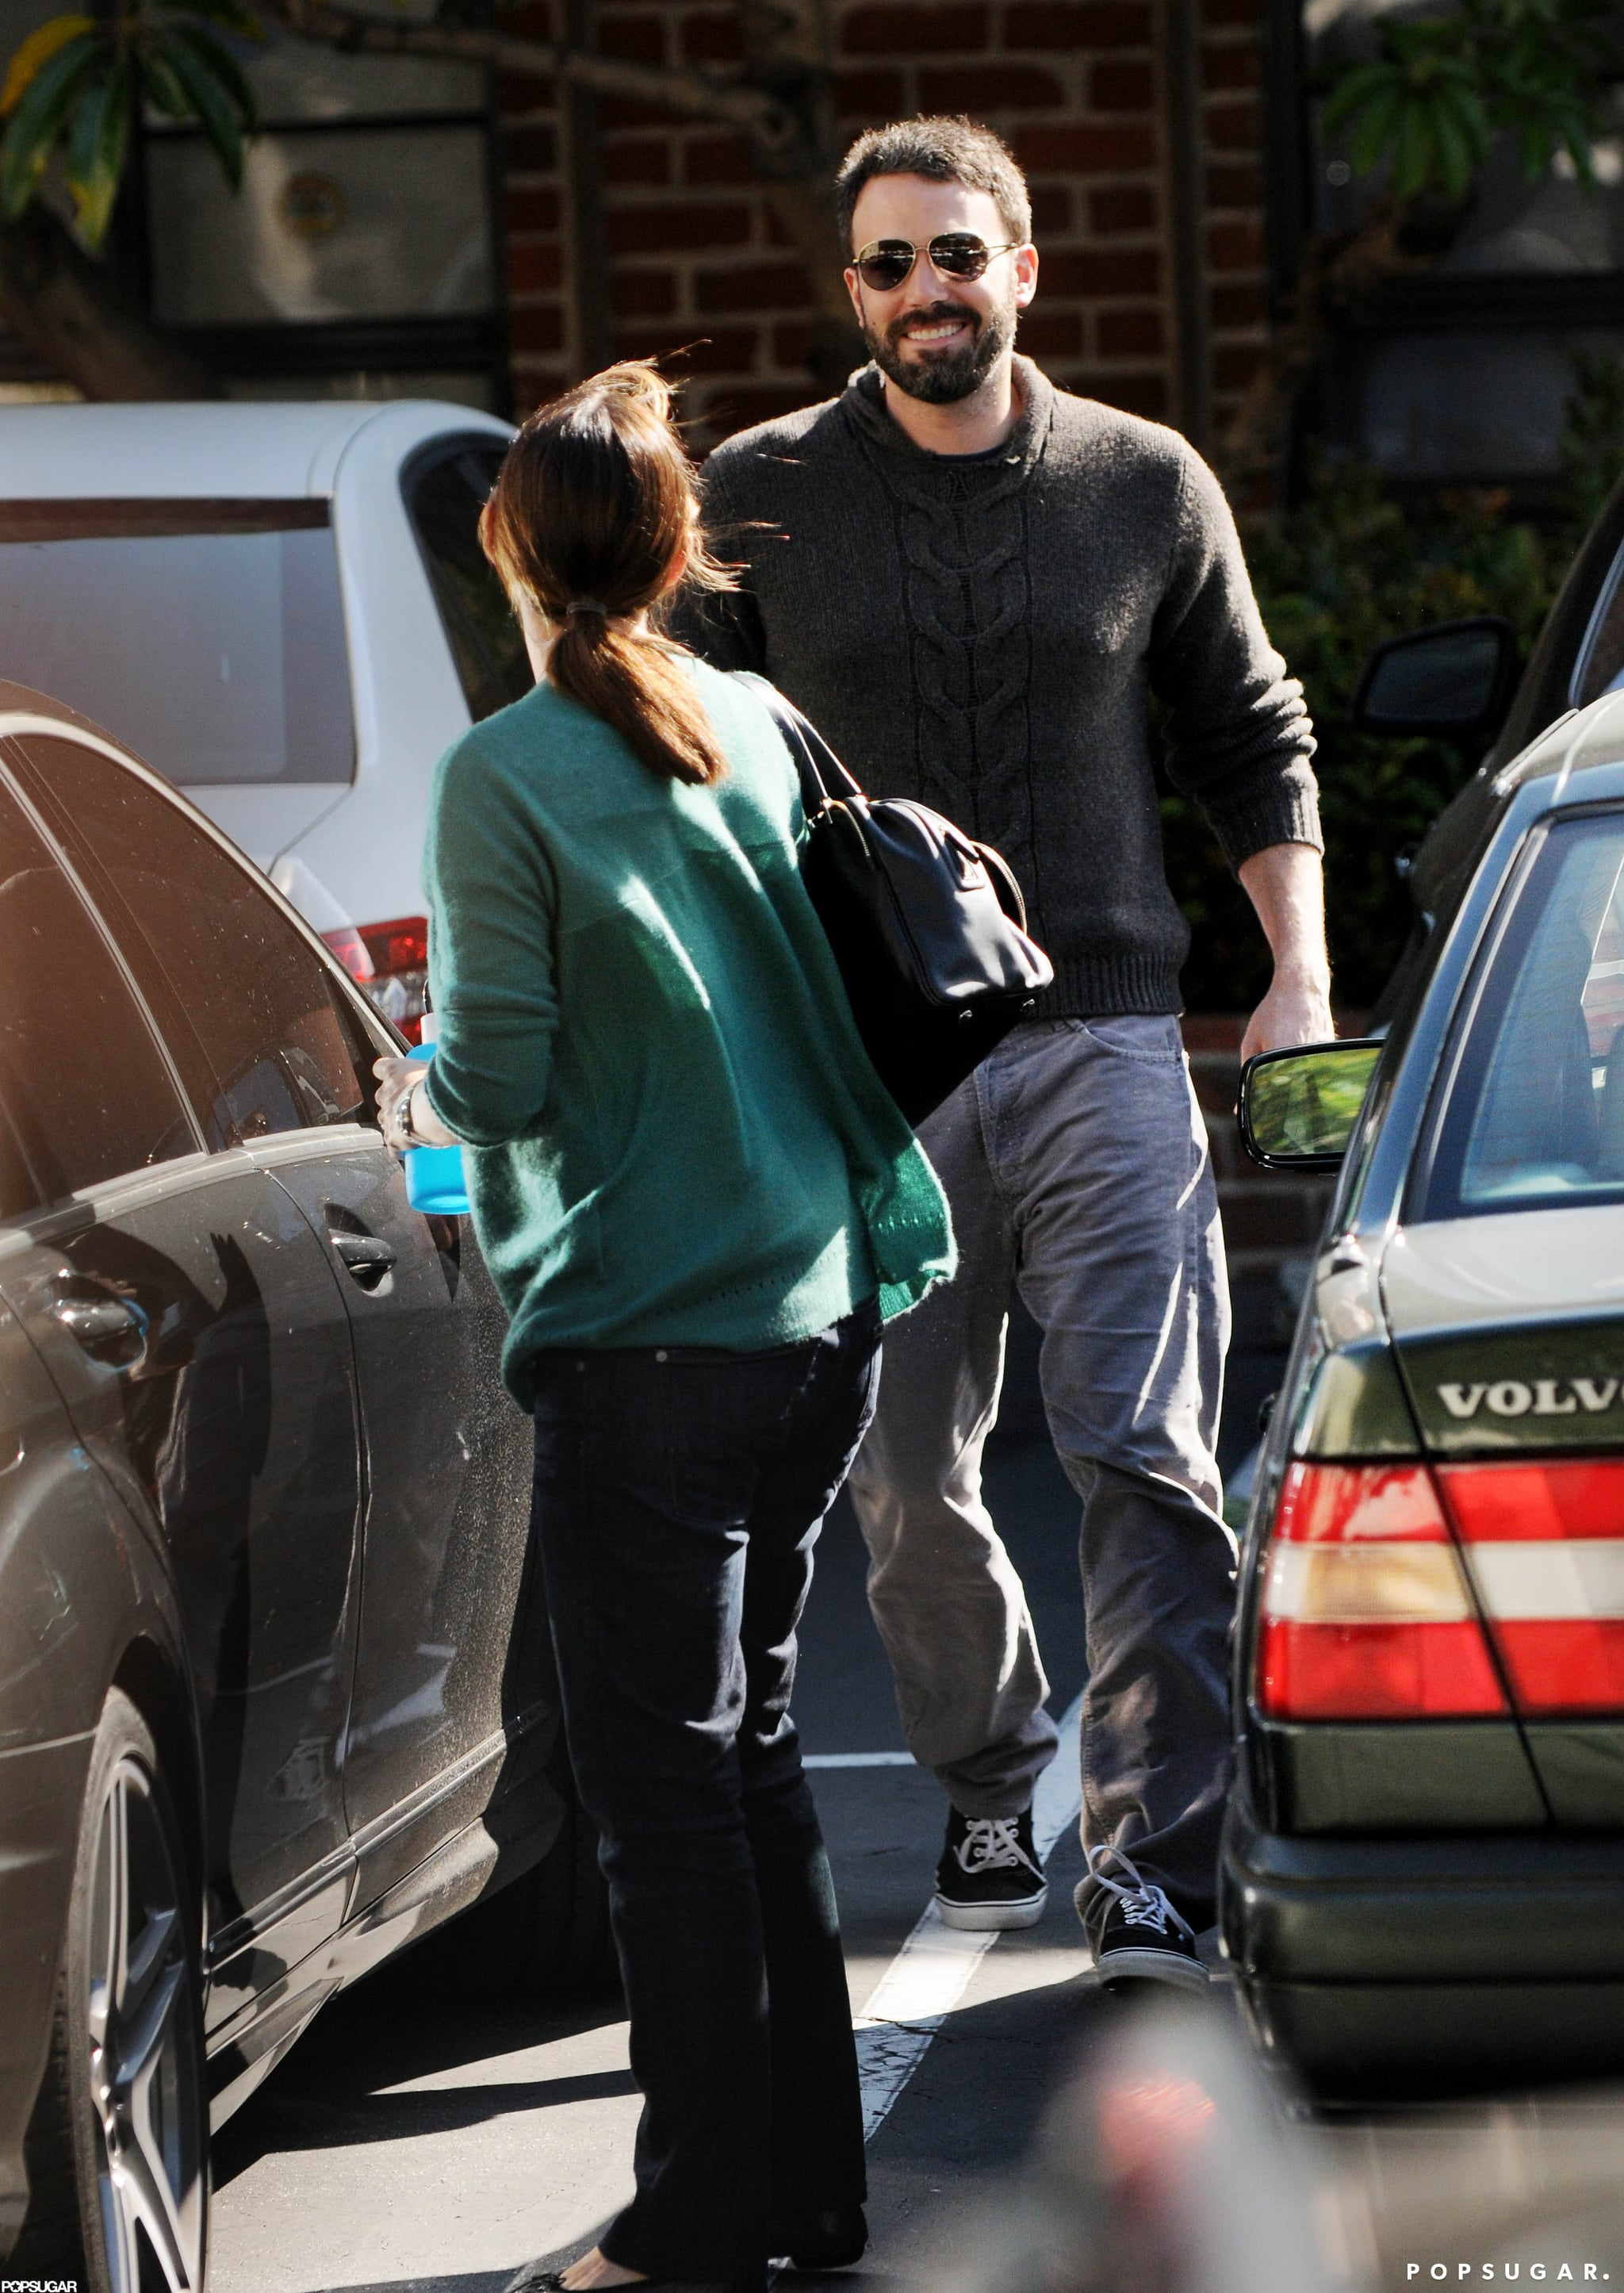 Ben Affleck and Jennifer Garner walked to their car after running errands together in LA.